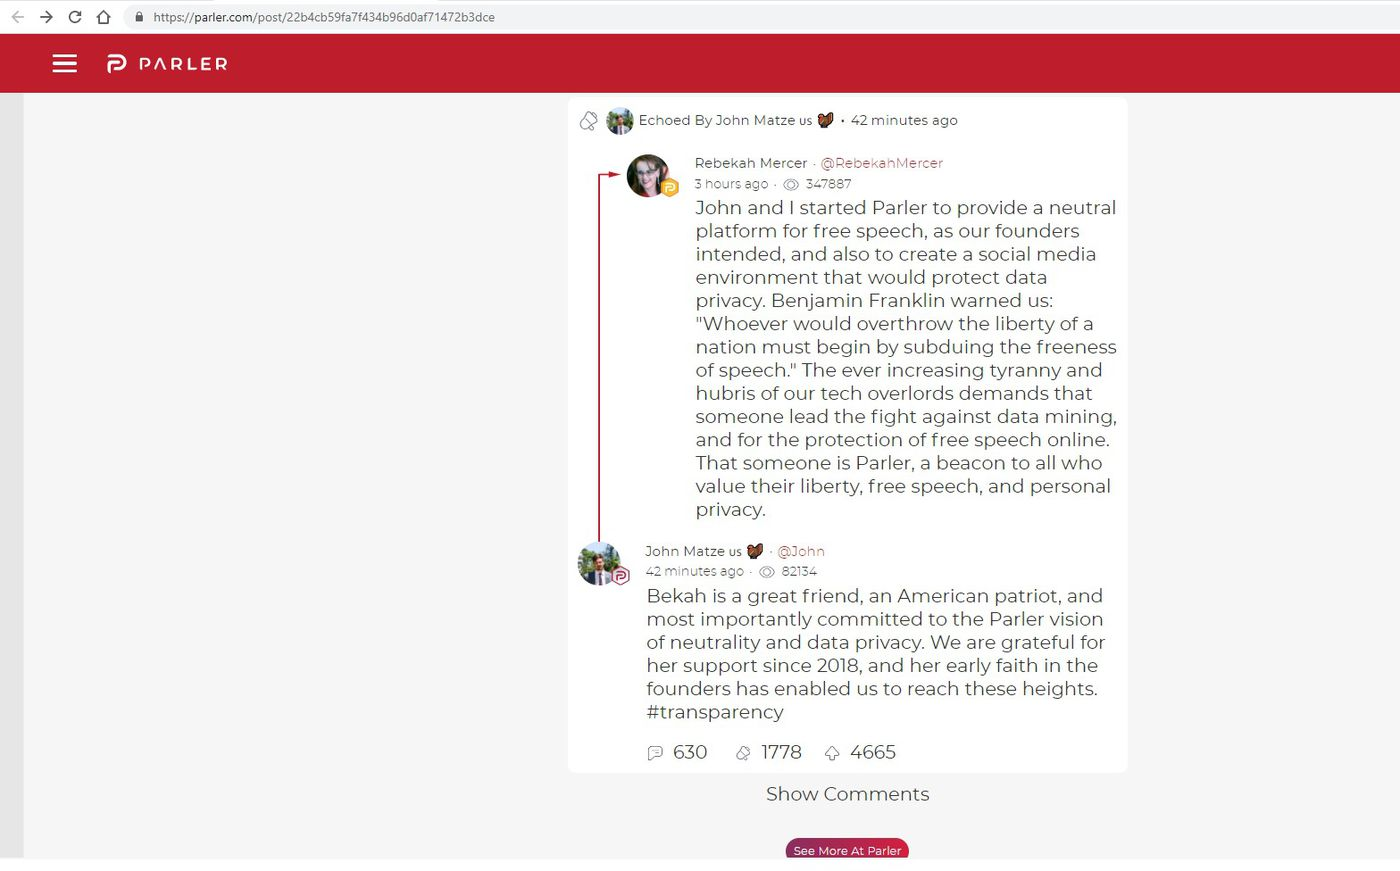 Social App Parler Apparently Receives Funding From The Conservative Mercer Family The Verge